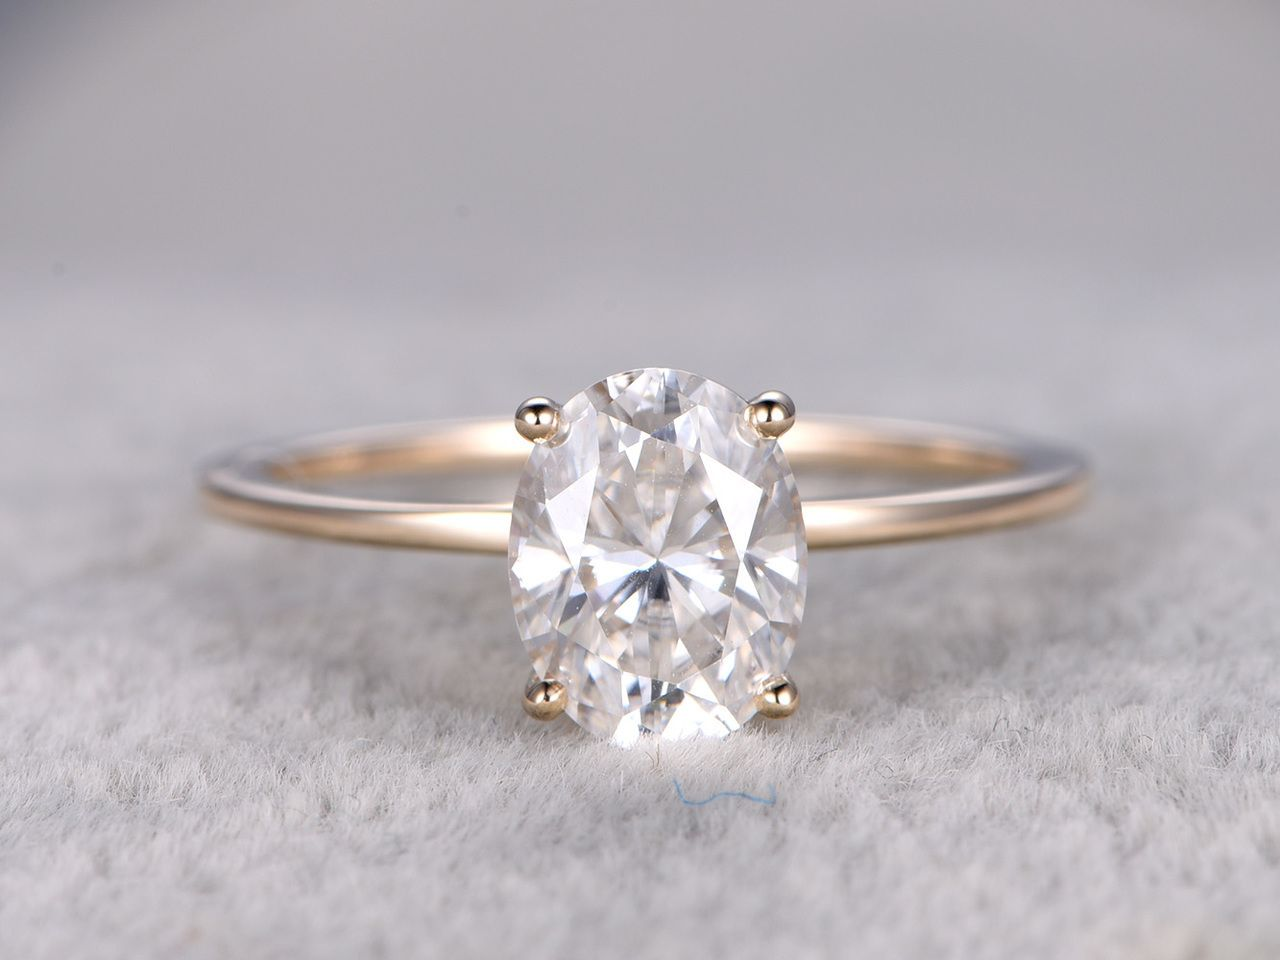 Xmm oval moissanite engagement ring k k yellow gold charles